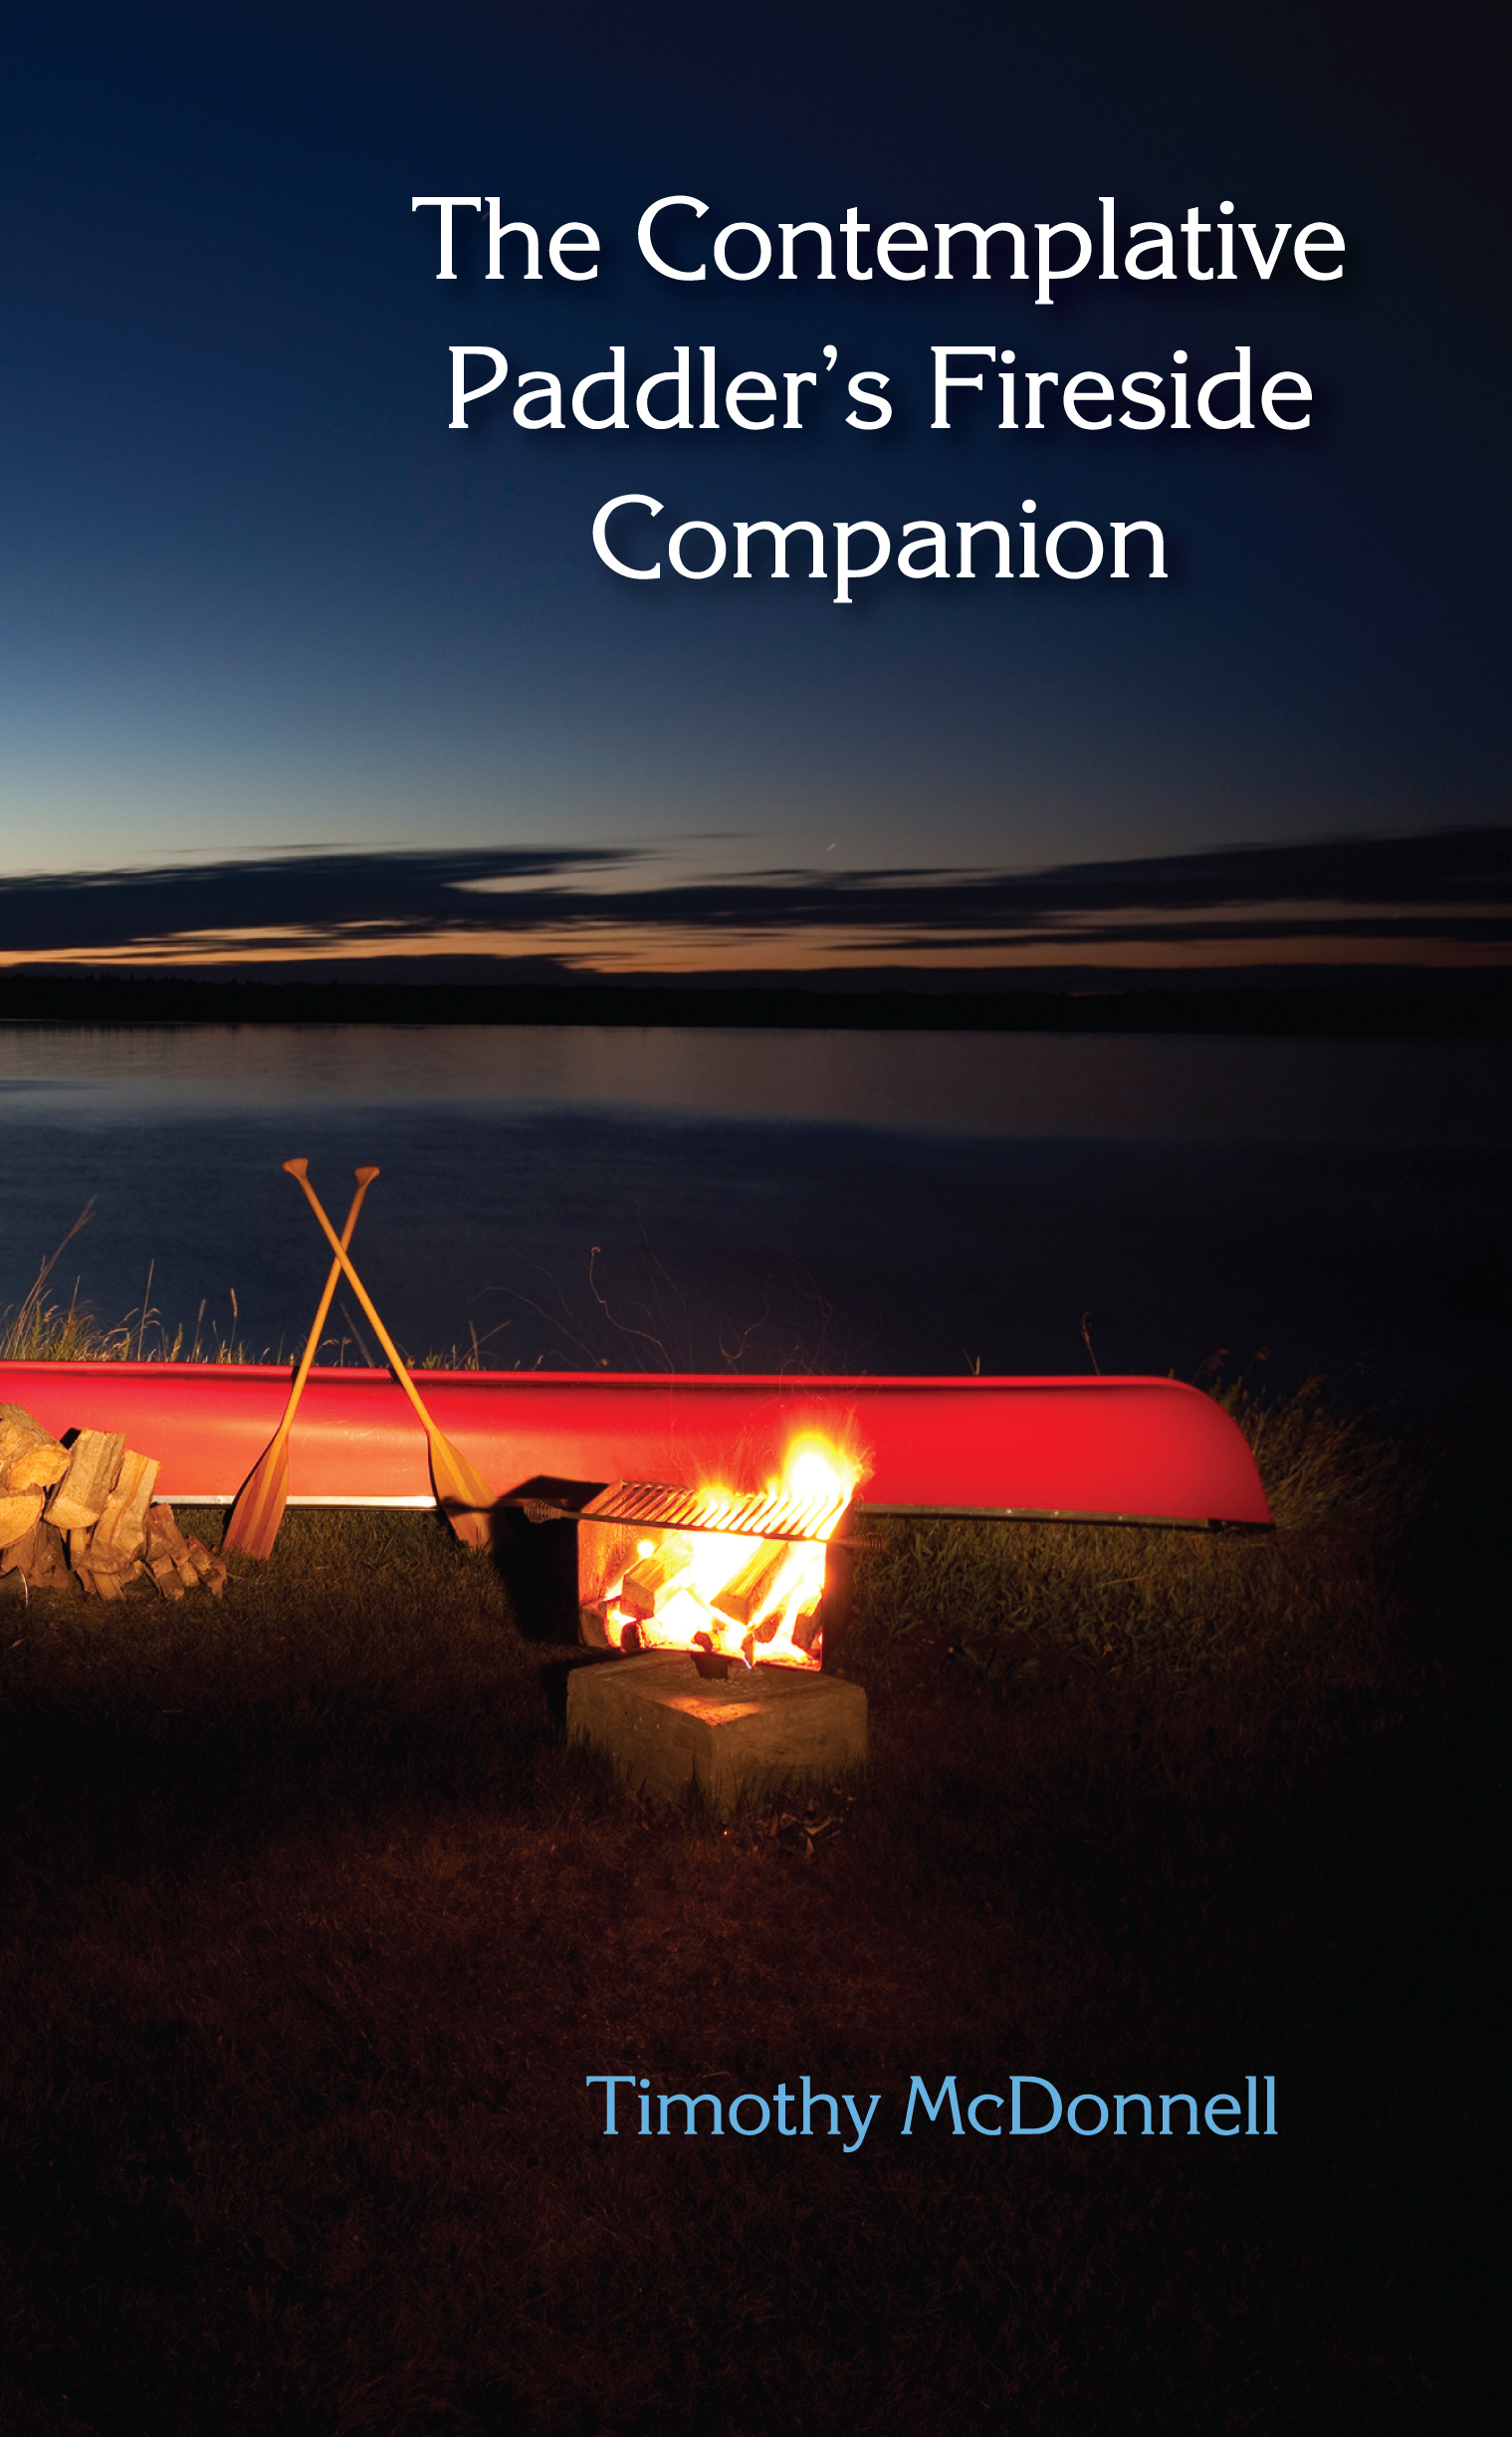 The Contemplative Paddler's Fireside Companion